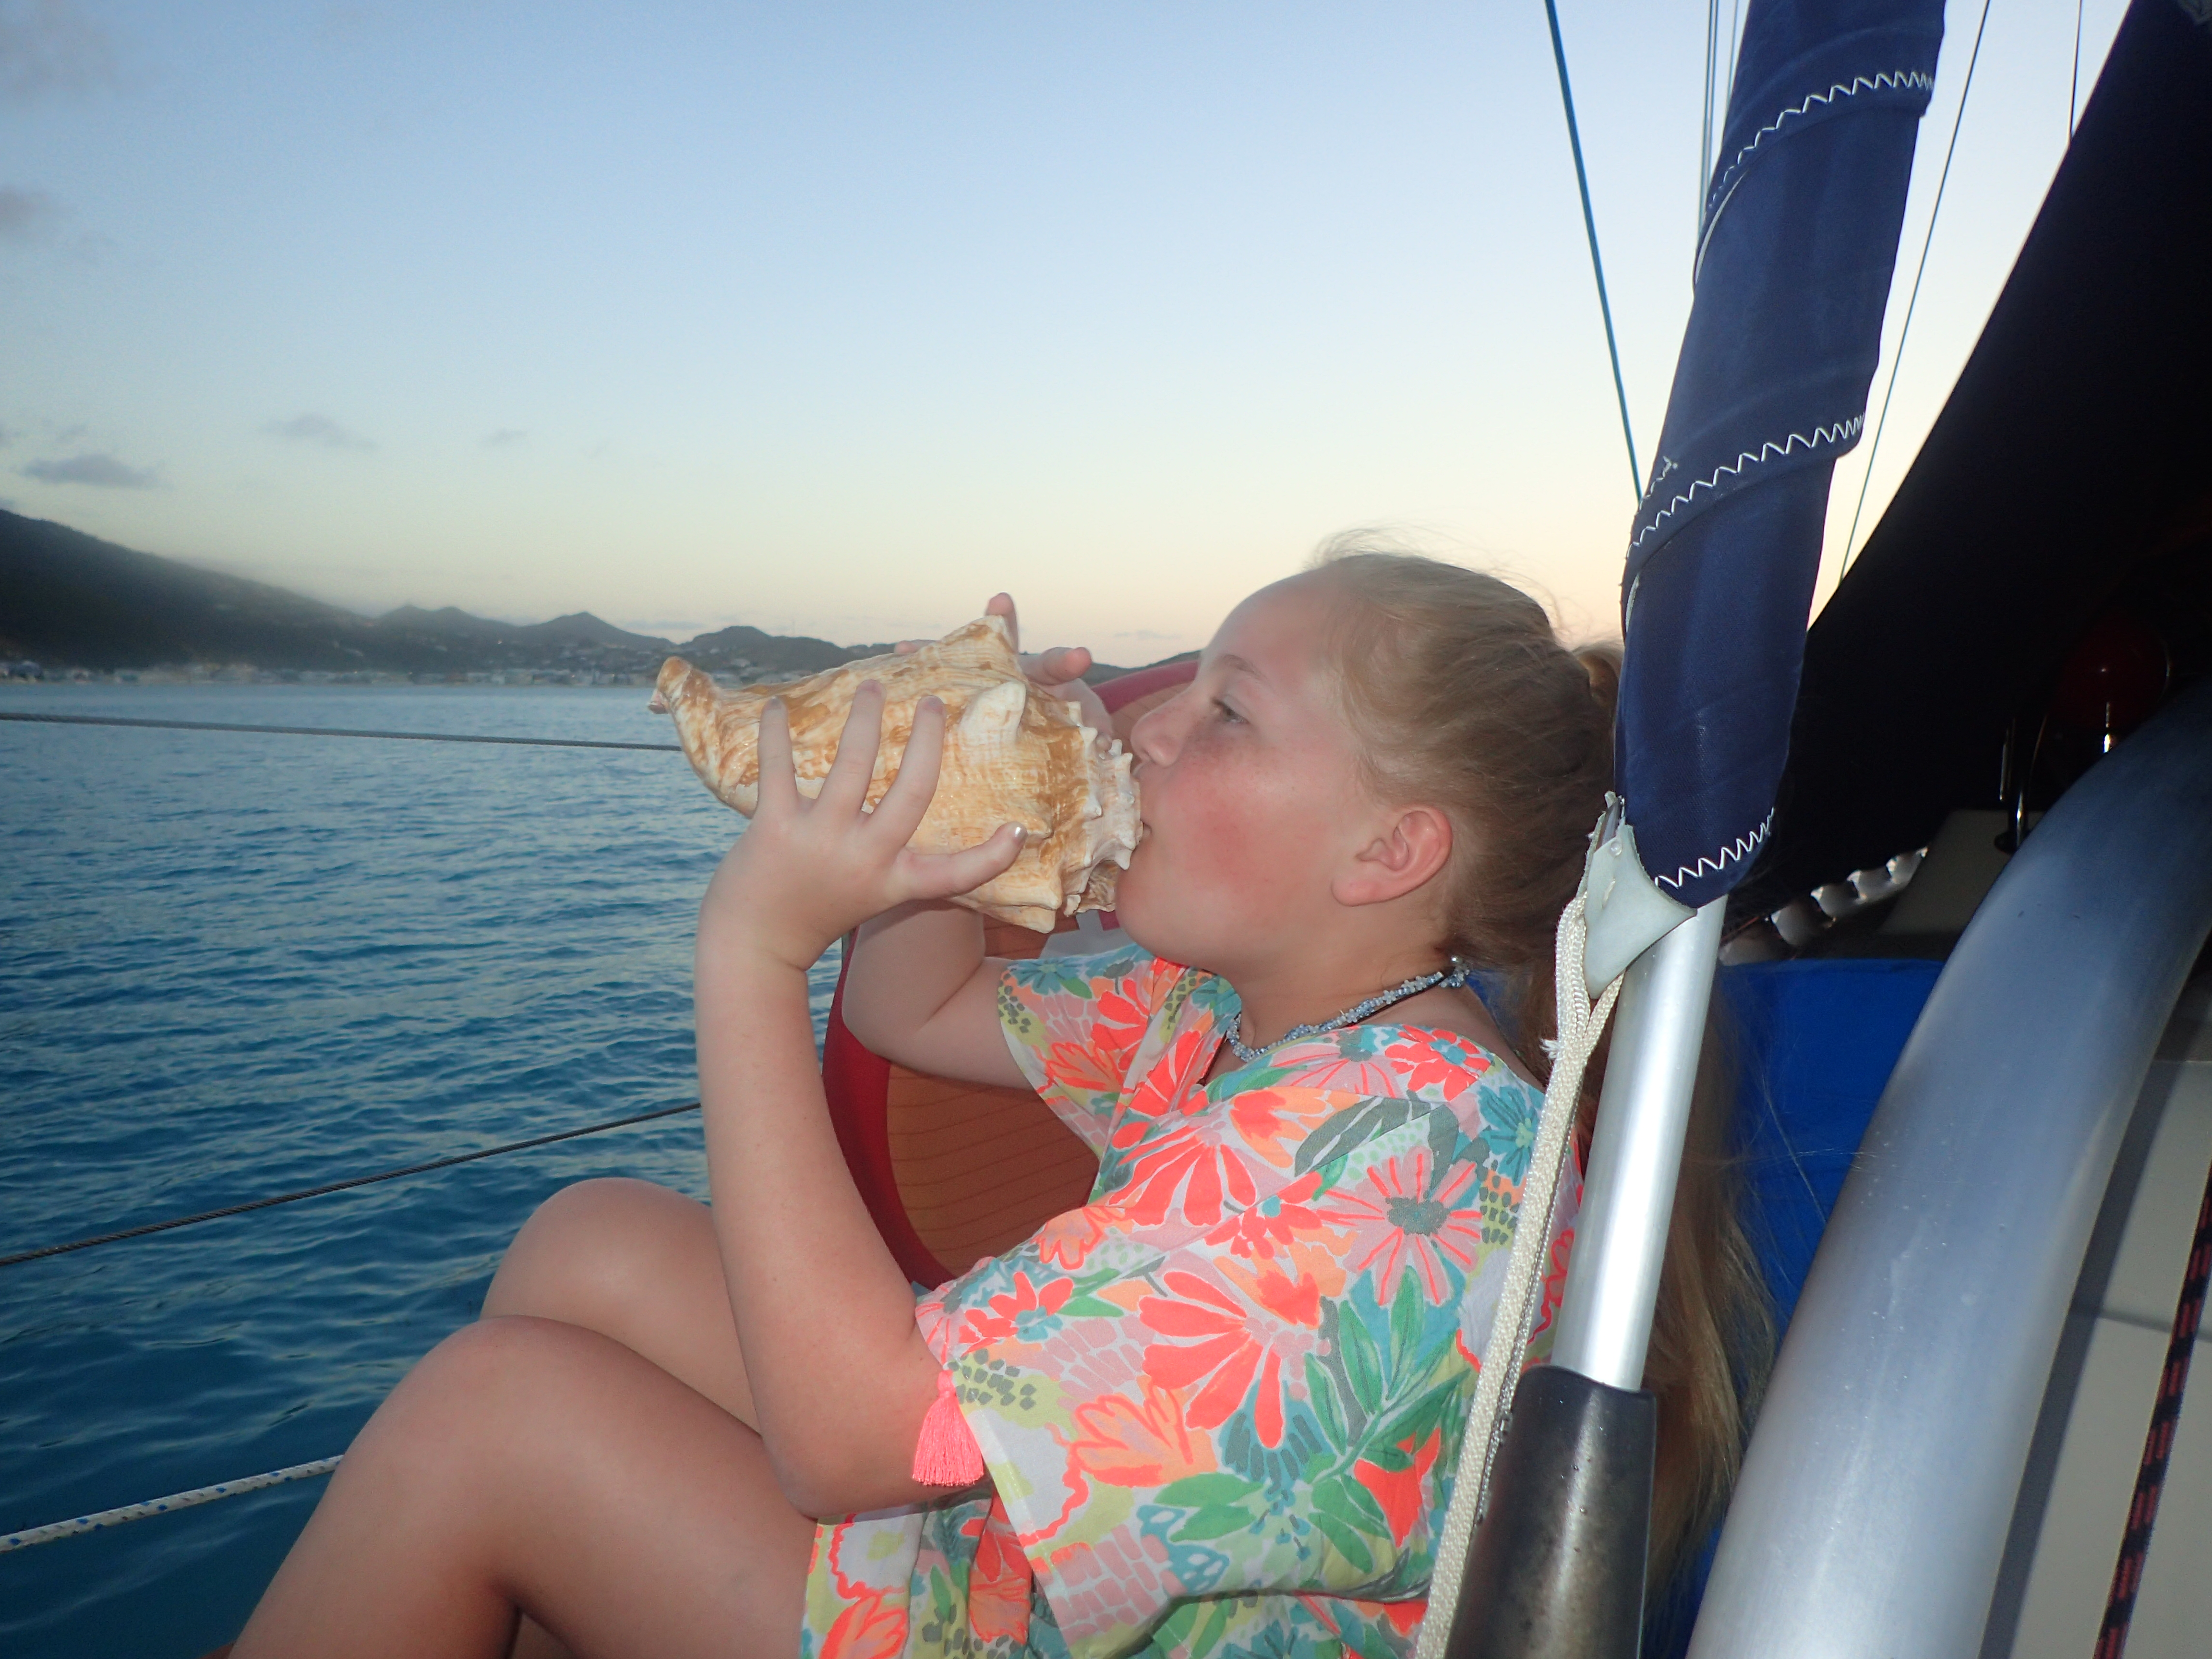 Learning to blow the conch horn